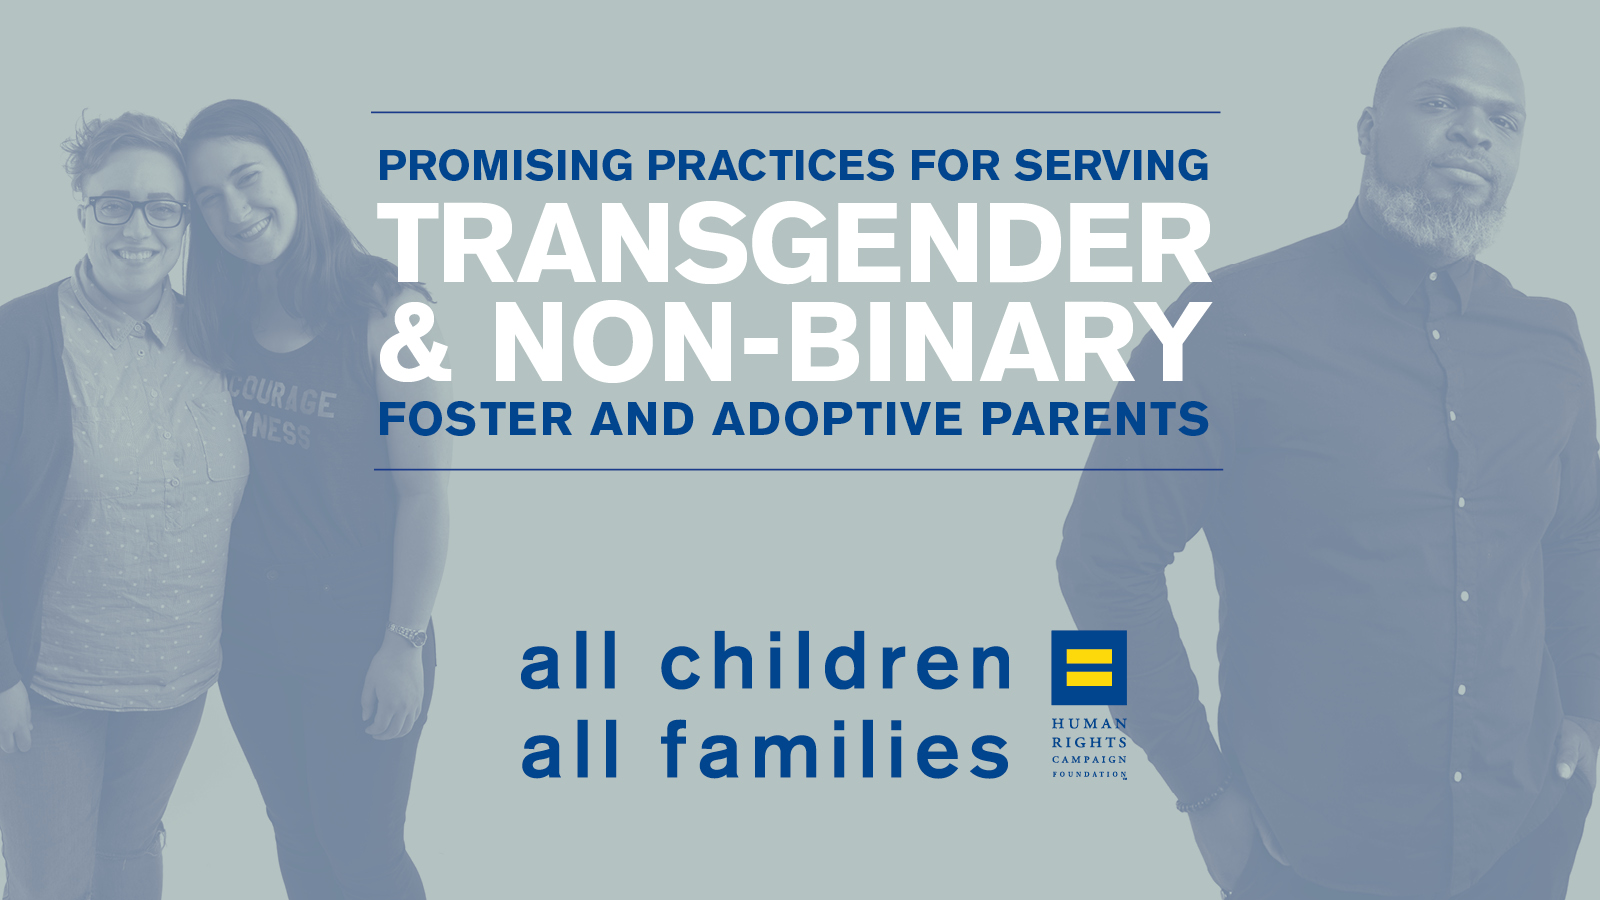 HRC Releases Guide on Engaging Prospective Trans & Non-Binary Foster and Adoptive Parents